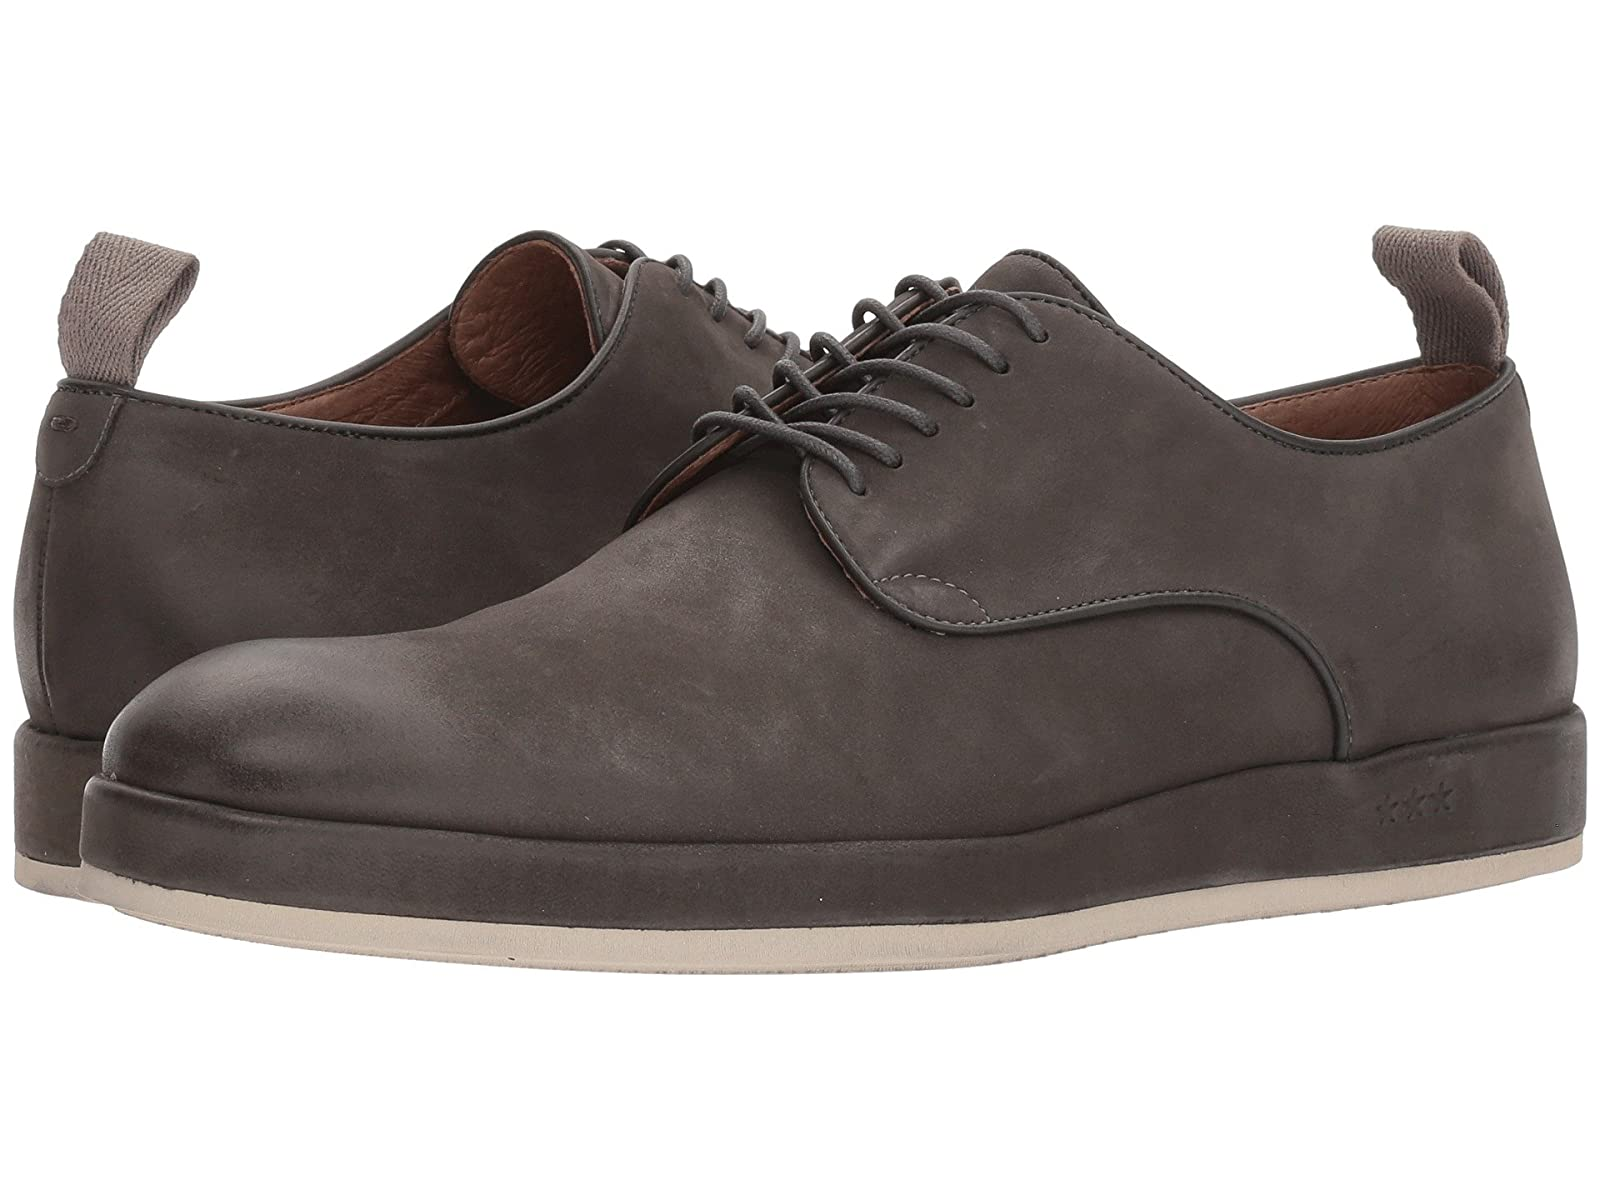 John Varvatos Sid Wrap DerbyCheap and distinctive eye-catching shoes